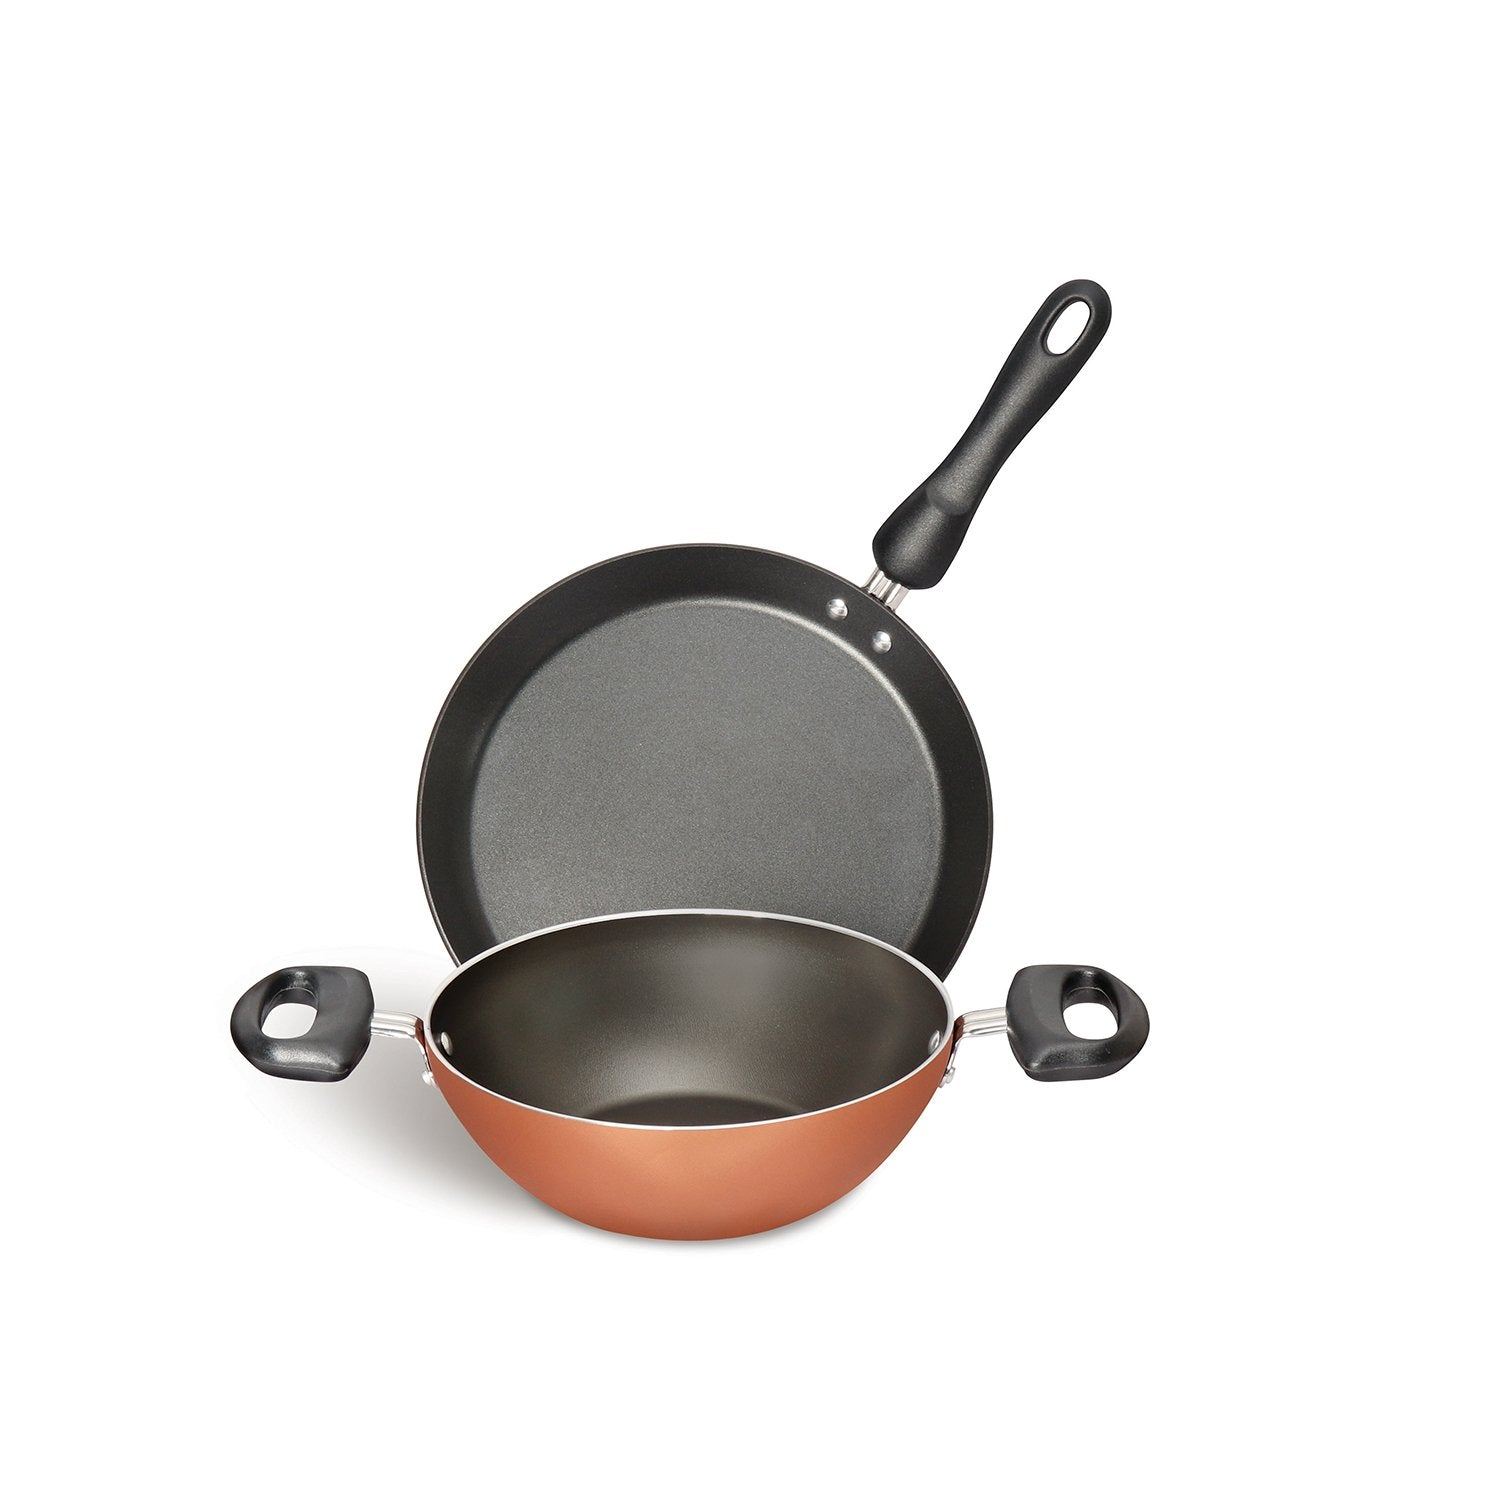 Meyer Non-Stick 2-Piece Cookware Set, Kadai + Flat Dosa Tawa (Suitable For Gas & Electric Cooktops) - Pots and Pans